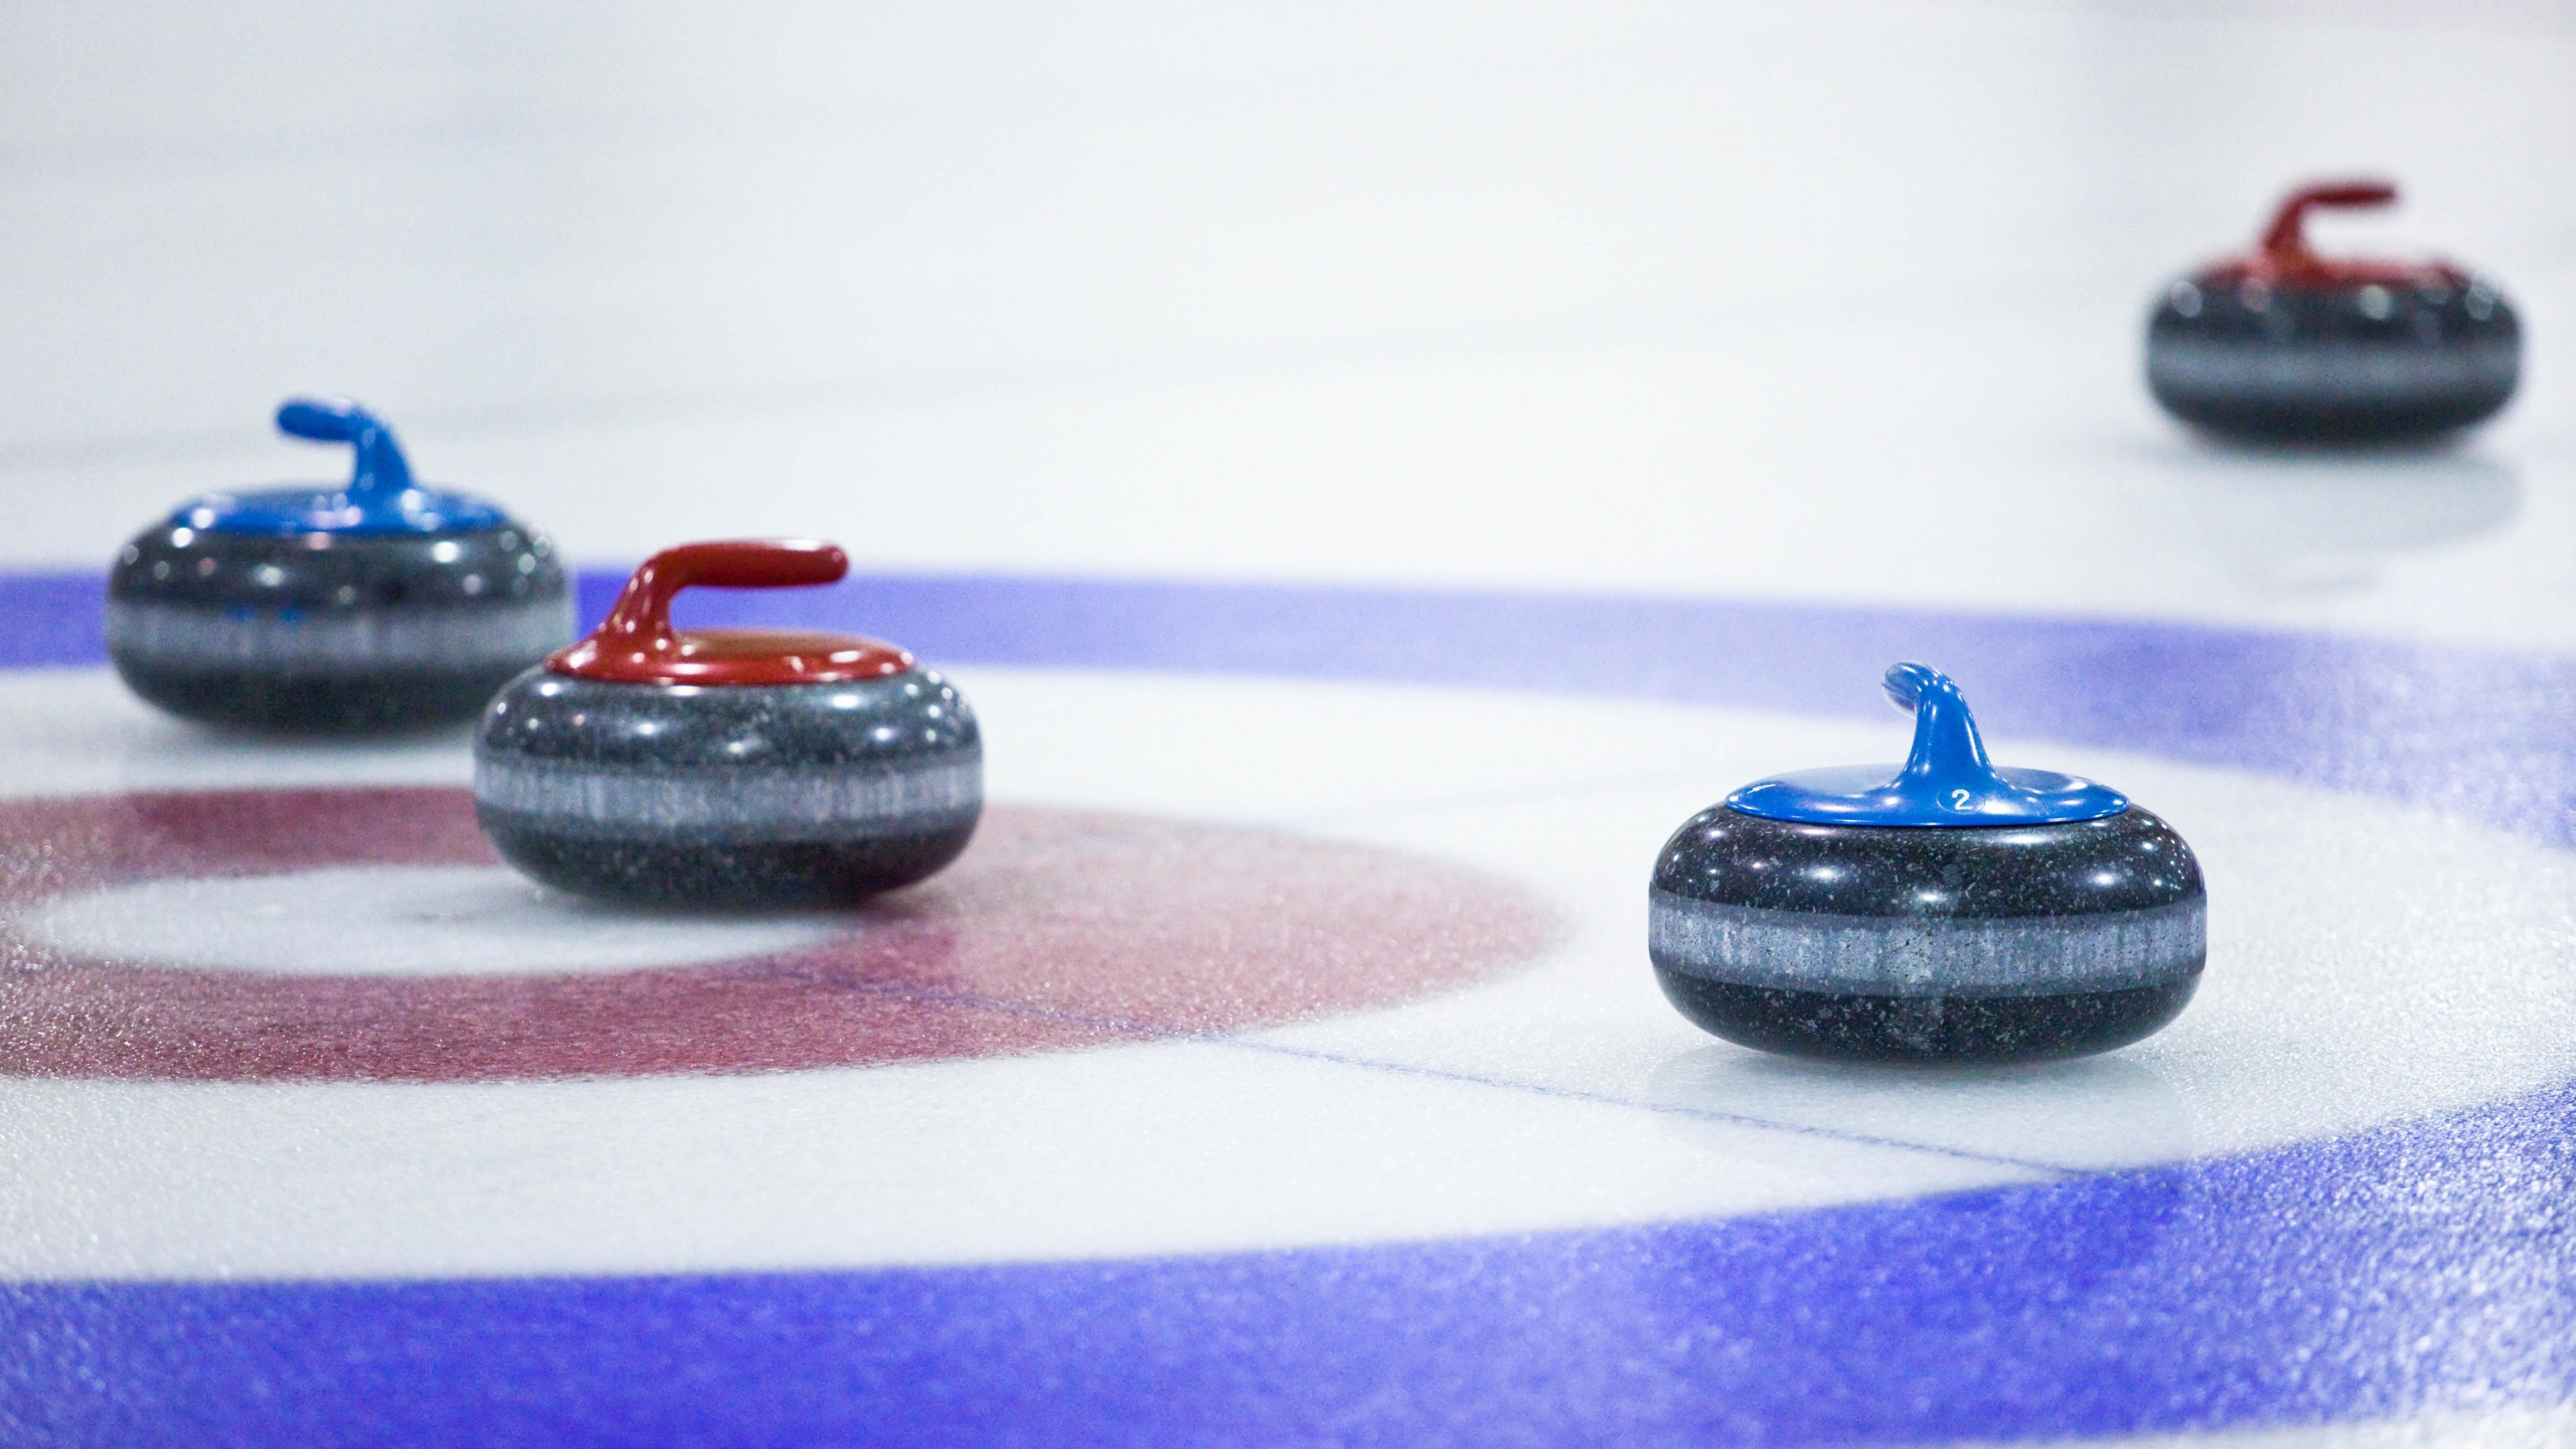 3840x2160 - Curling Wallpapers 7